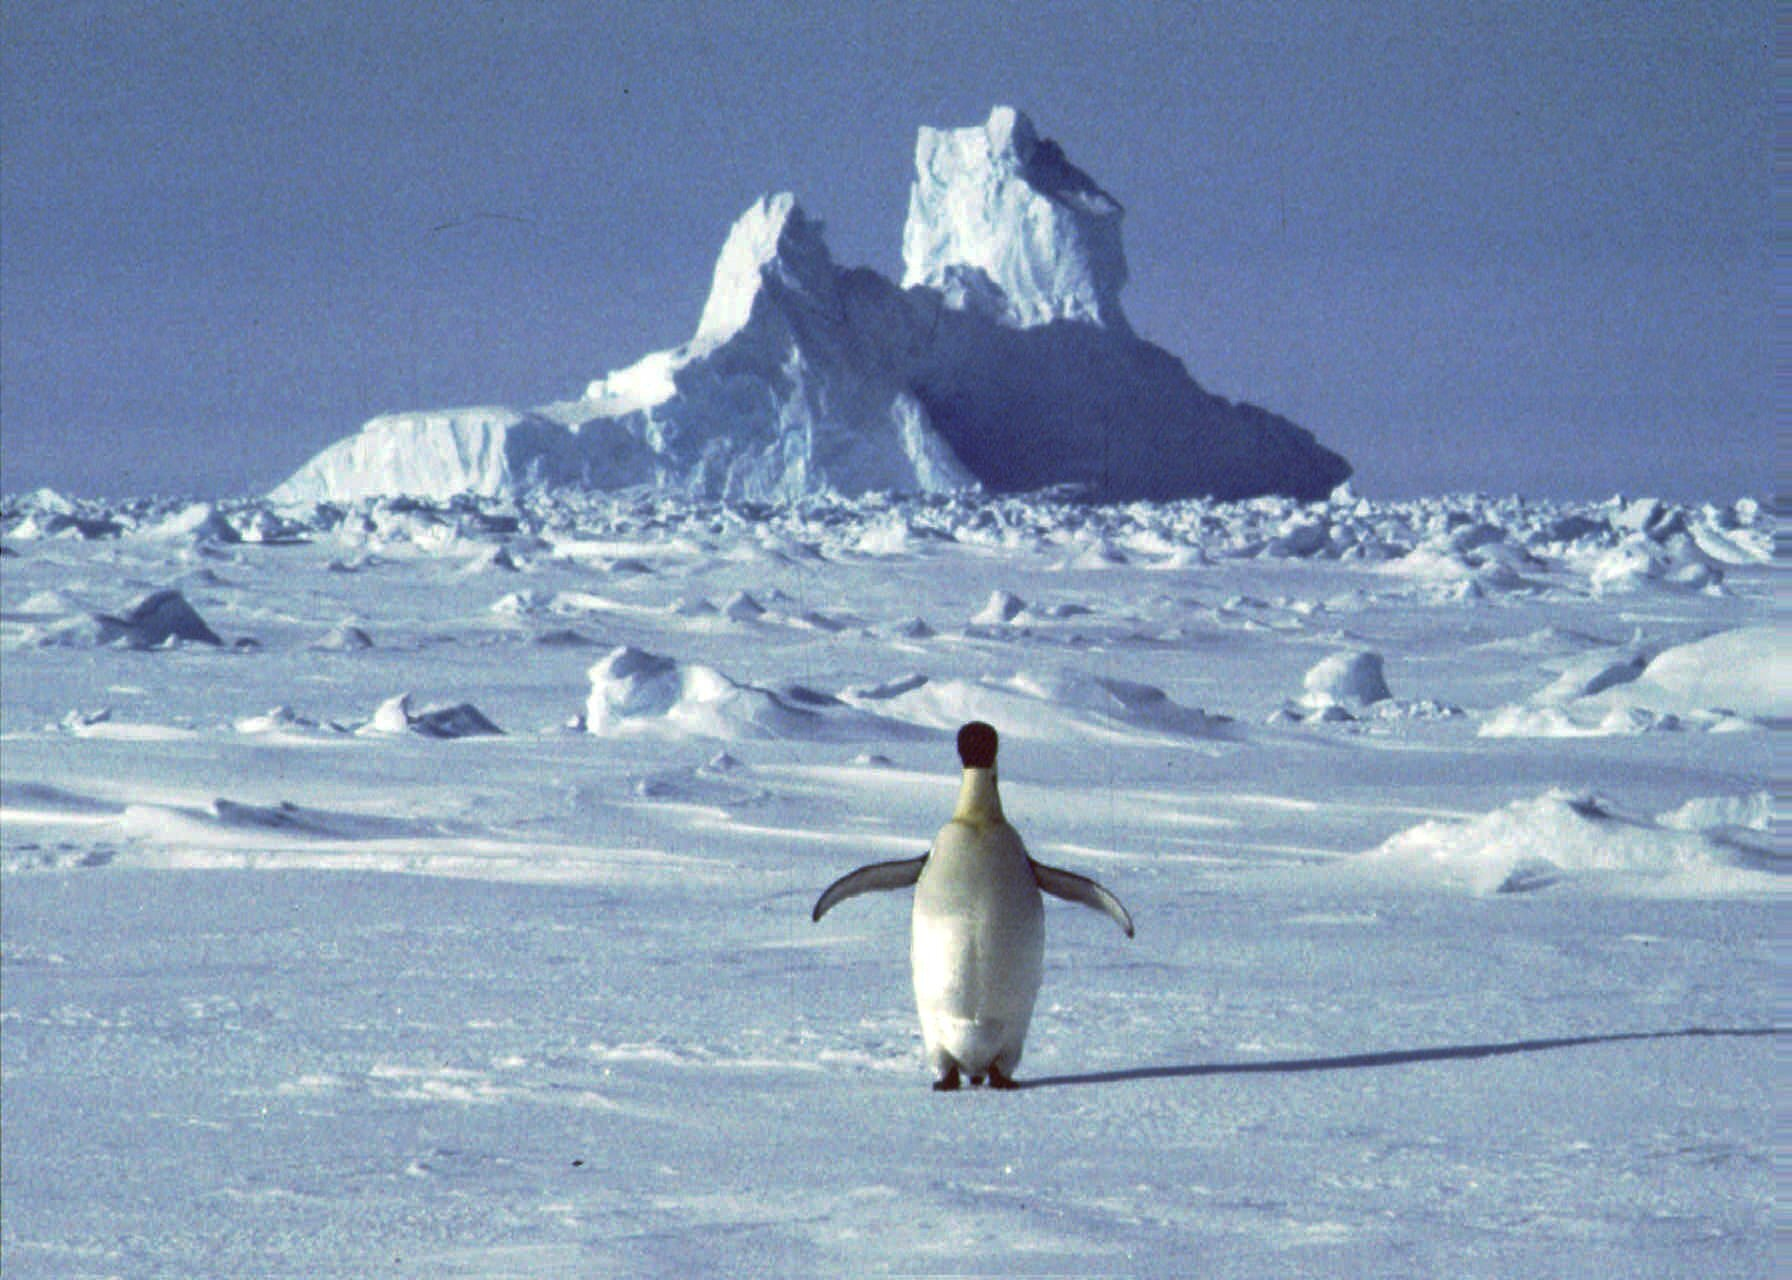 SINGLE PENGUIN ON ICE